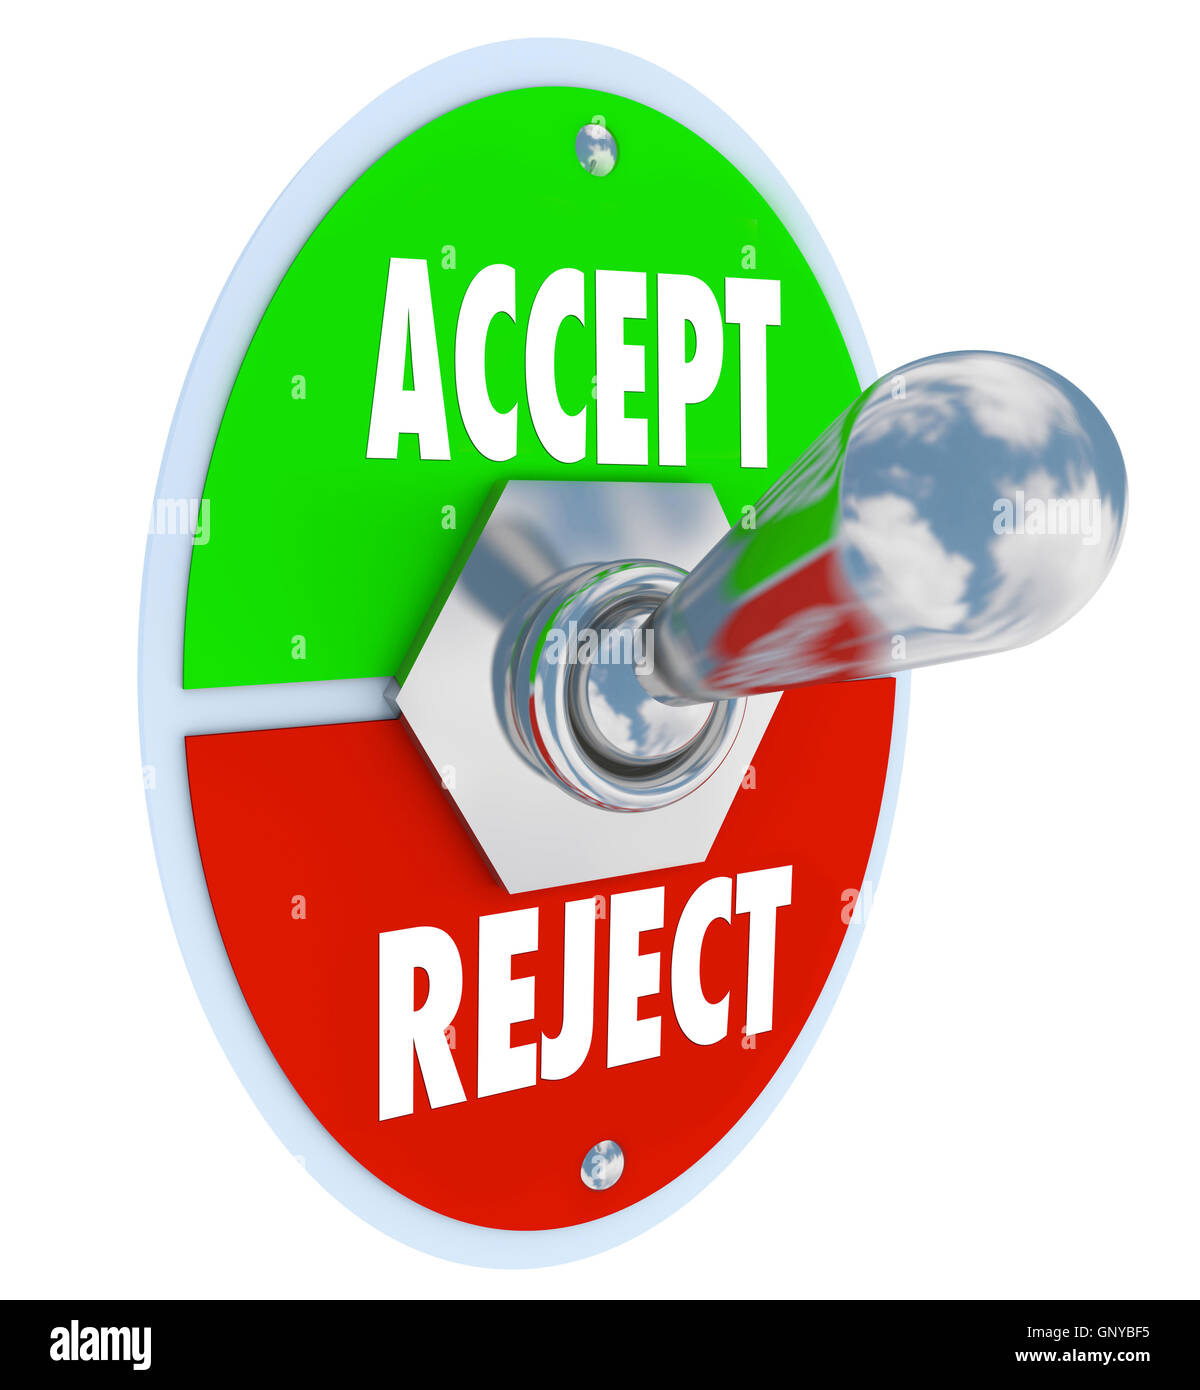 Accept vs Reject Switch of Acceptance or Rejection - Stock Image